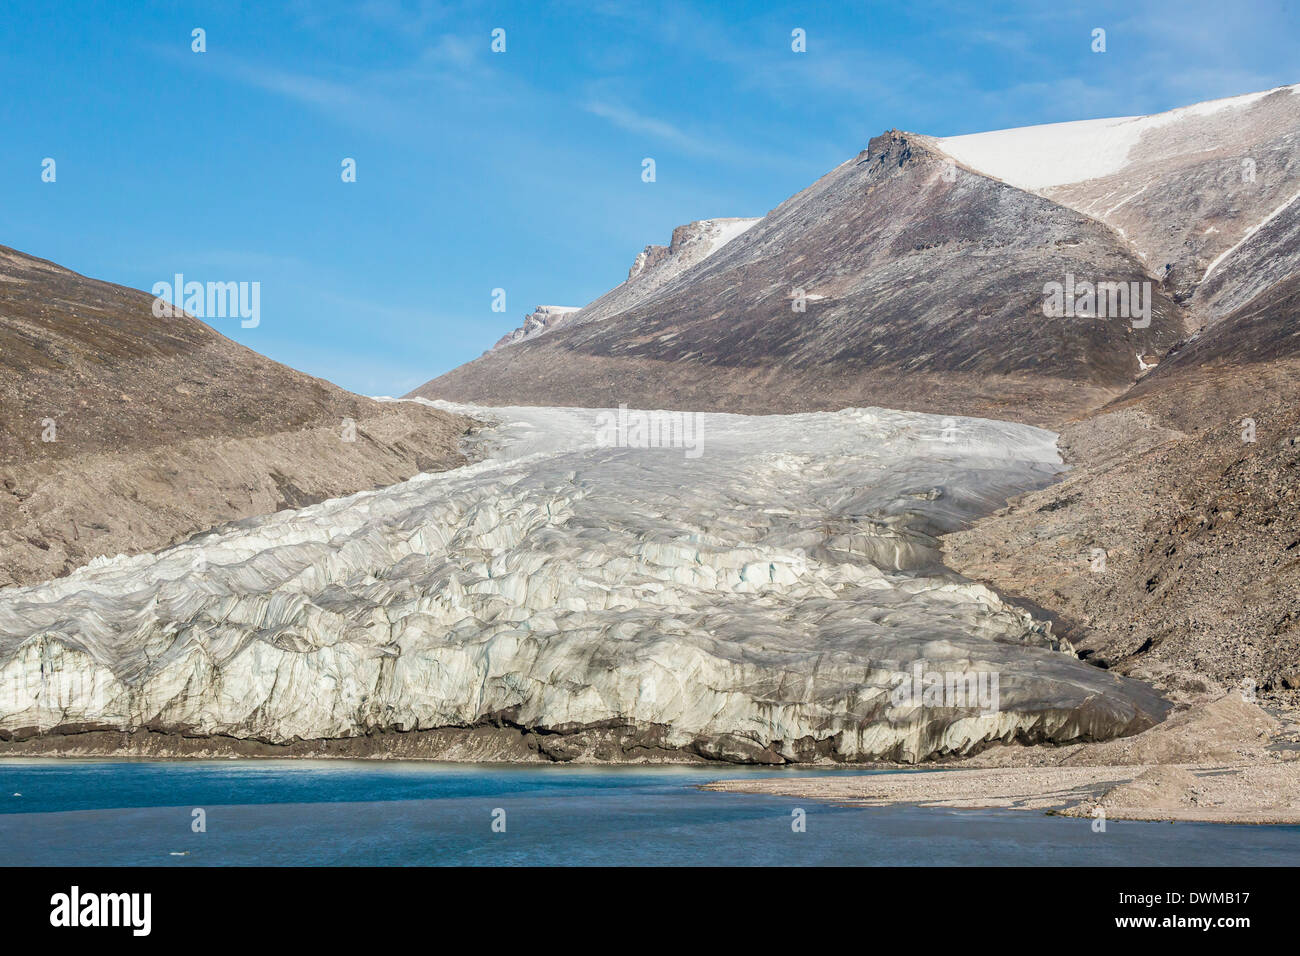 Snow-capped peaks and glaciers in Icy Arm, Baffin Island, Nunavut, Canada, North America - Stock Image